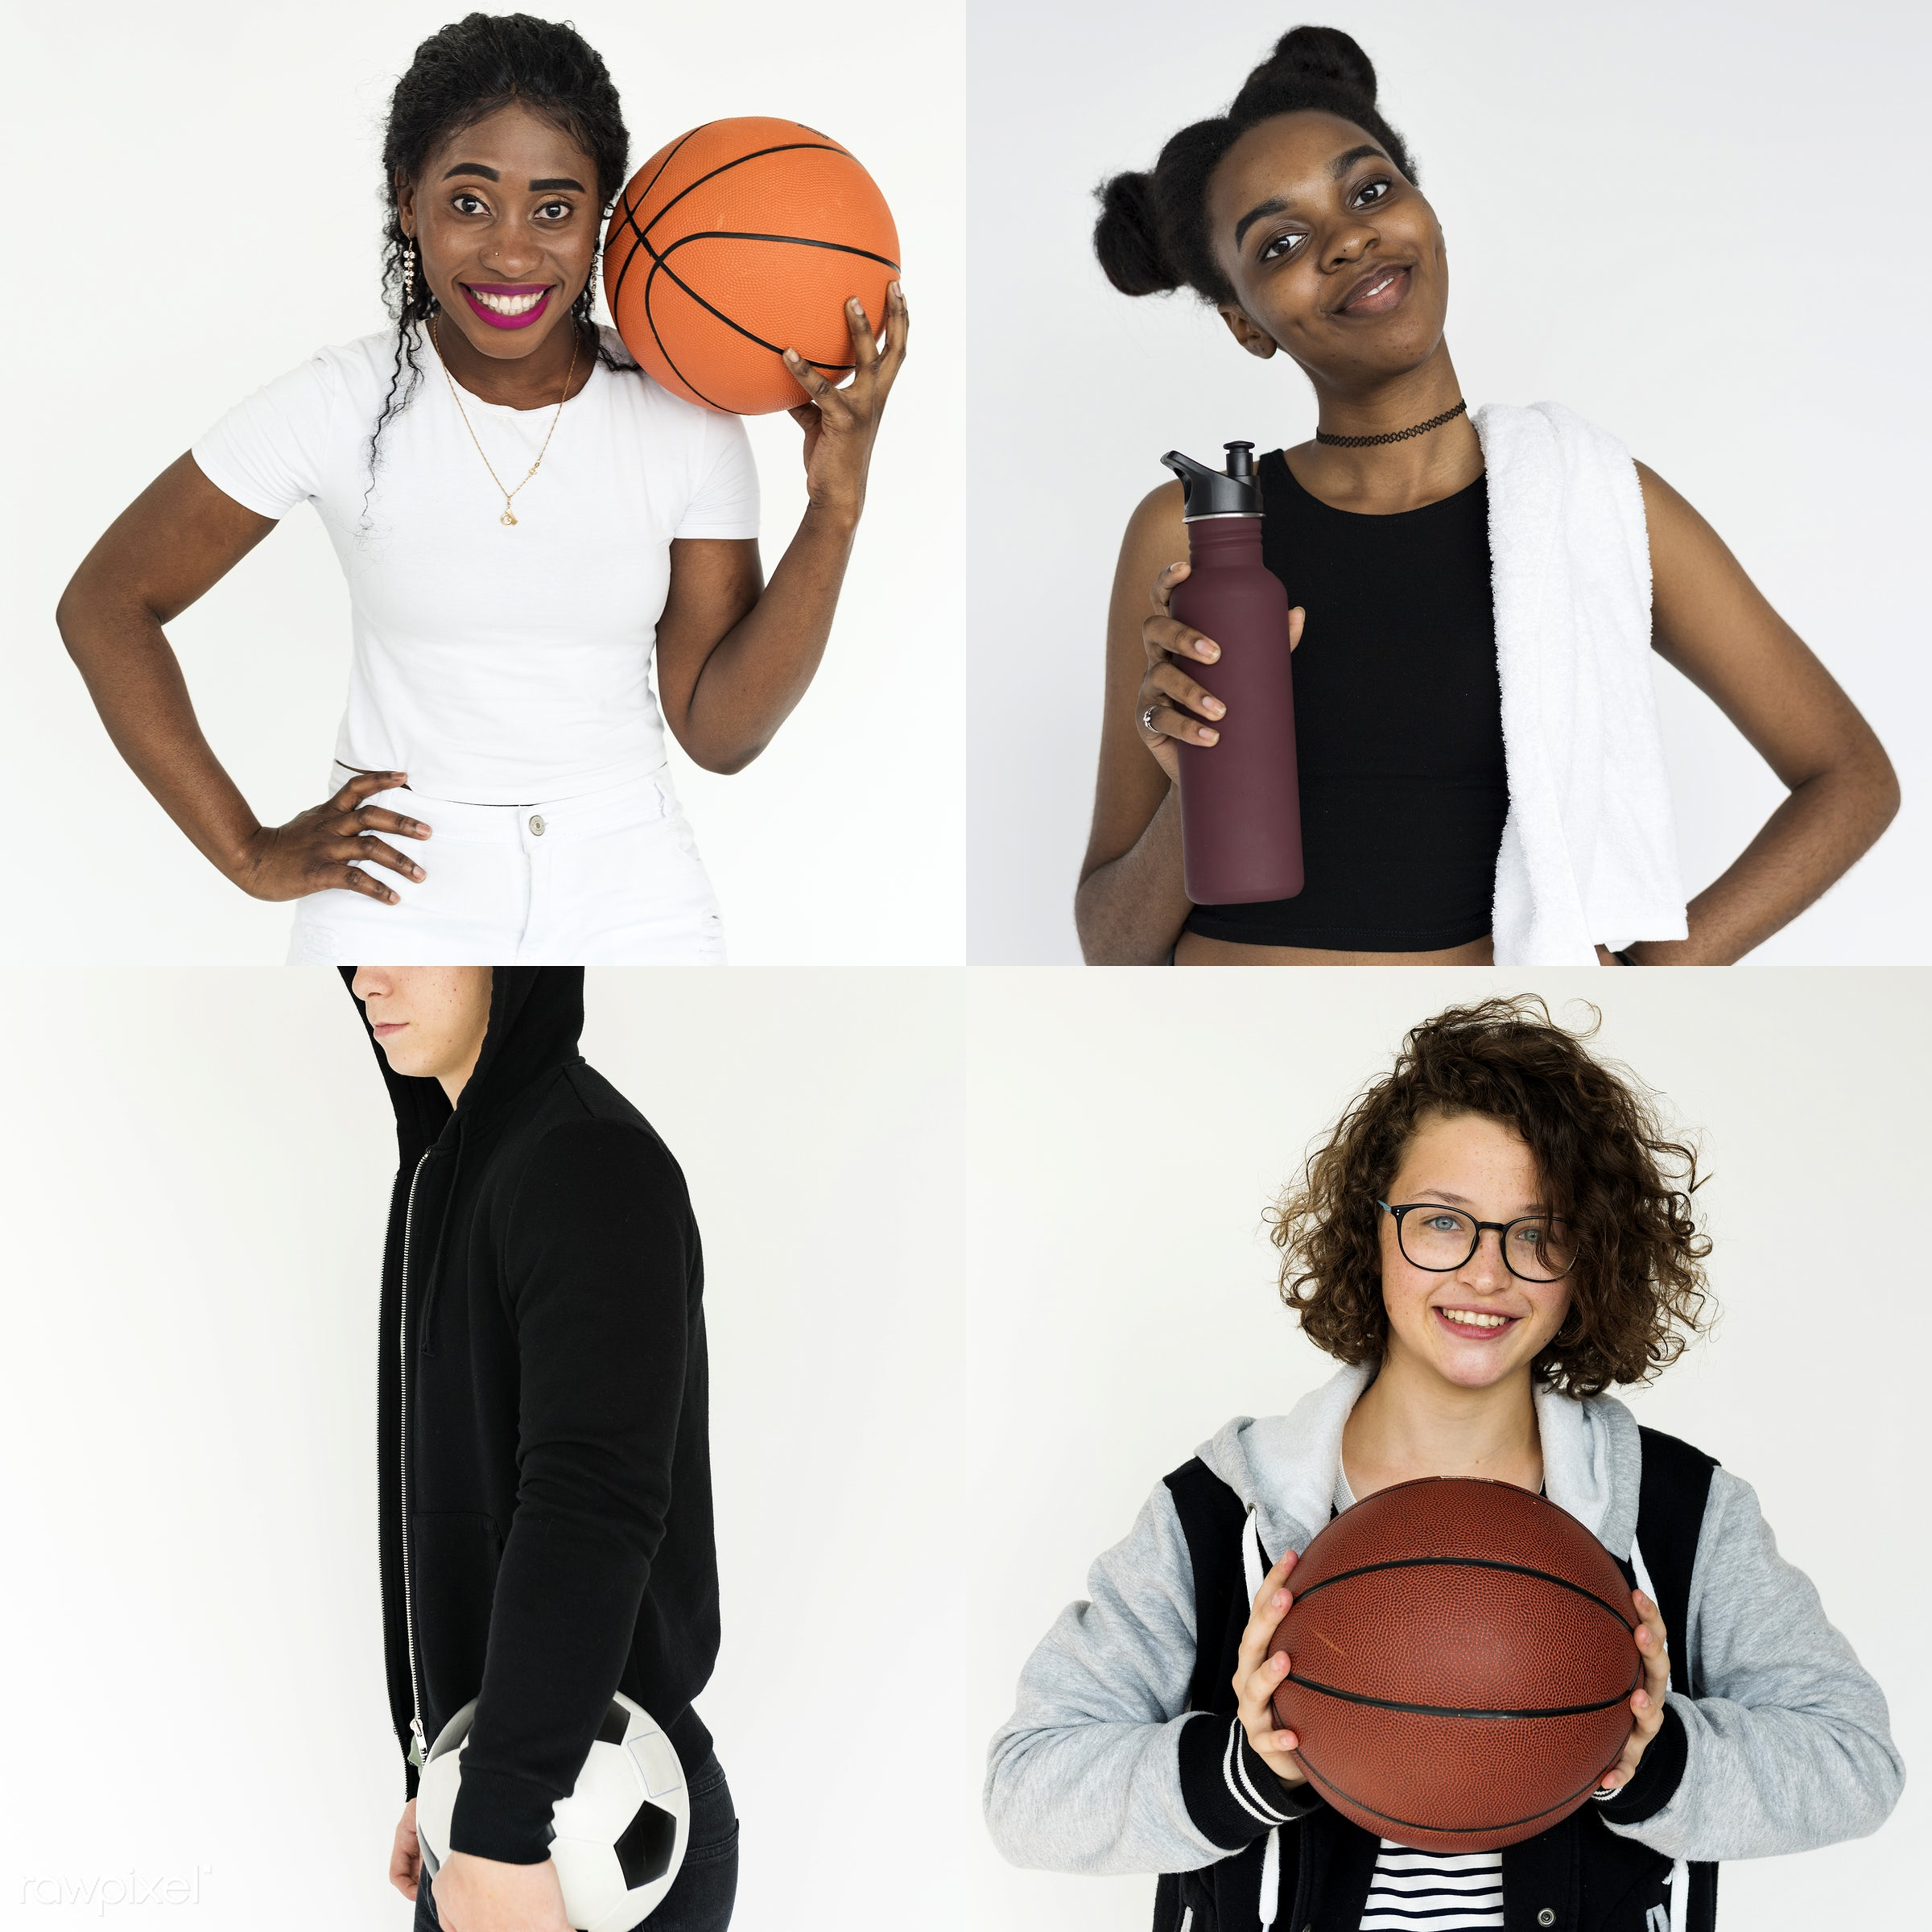 Set of portraits of athletes - expression, basketball, studio, person, people, young adult, woman, lifestyle, smiling,...